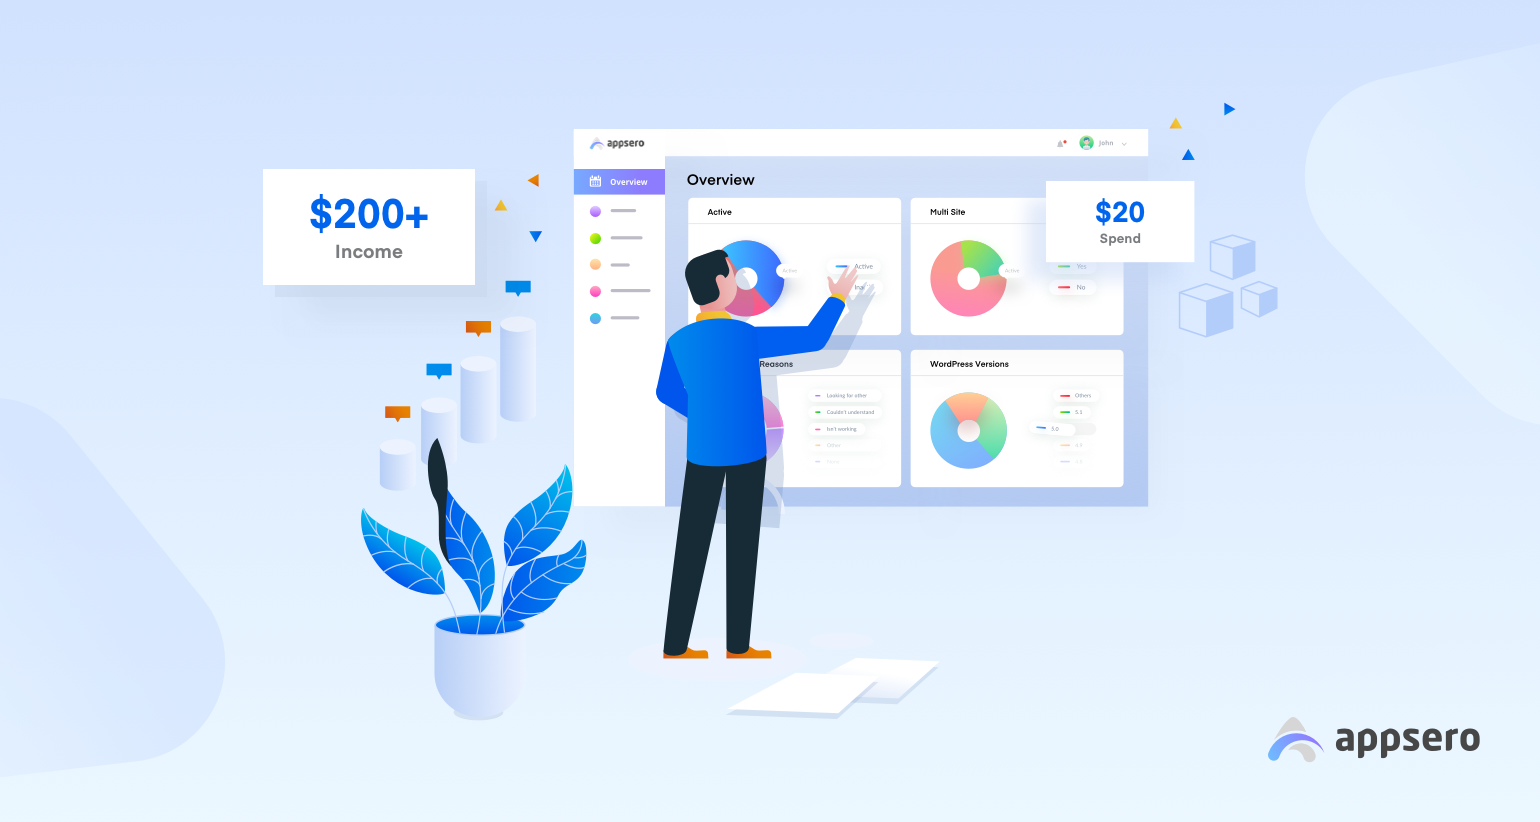 Ways To Manage Your 200k+ Software Business By Only $20